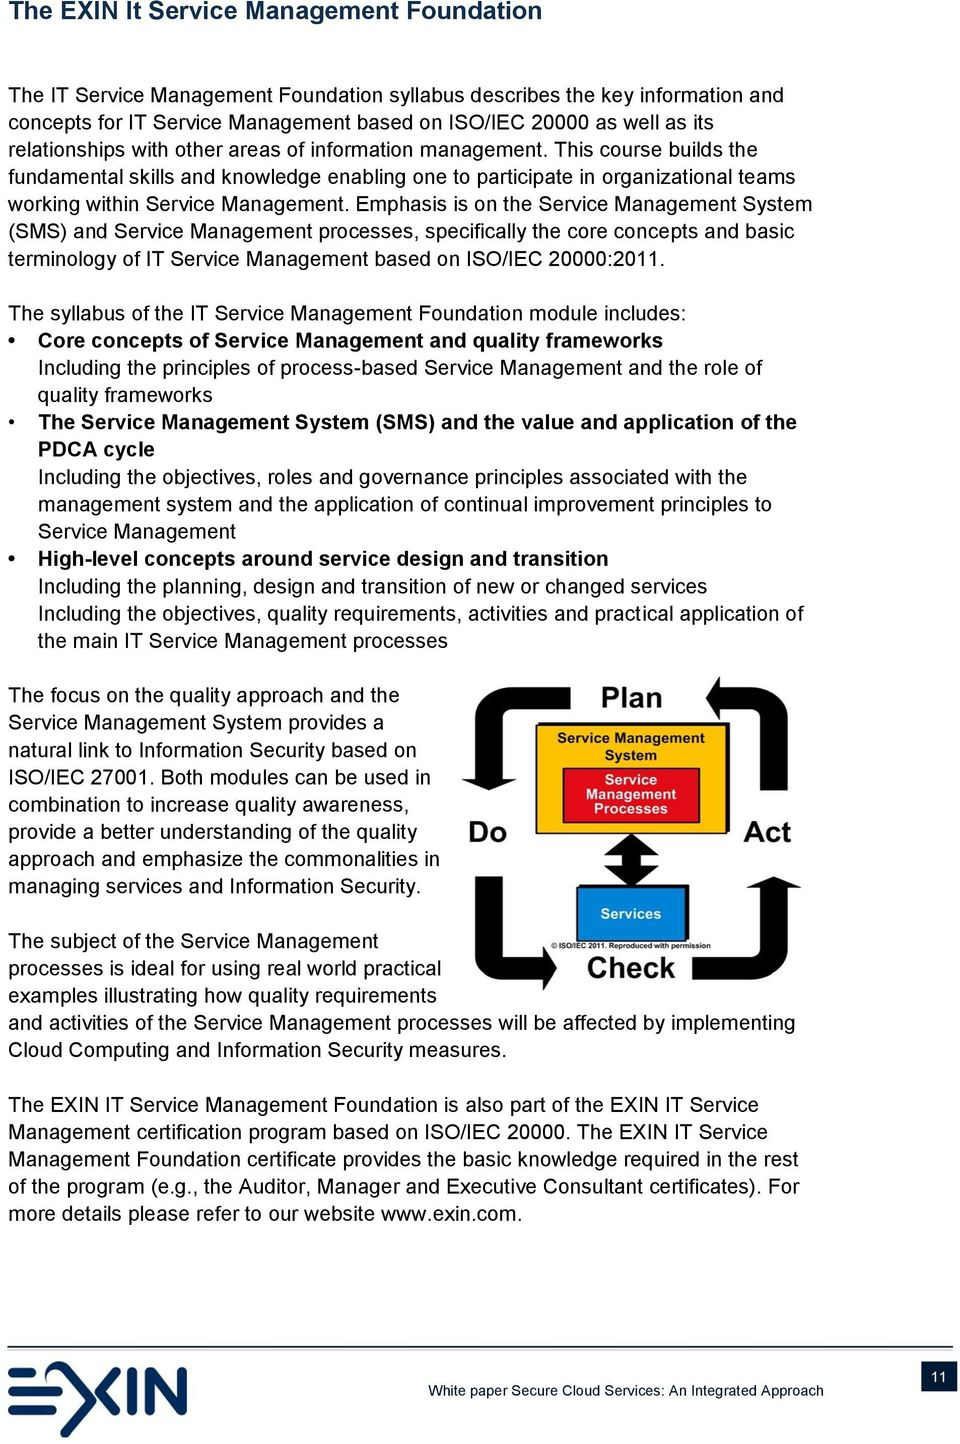 Emphasis is on the Service Management System (SMS) and Service Management processes, specifically the core concepts and basic terminology of IT Service Management based on ISO/IEC 20000:2011.